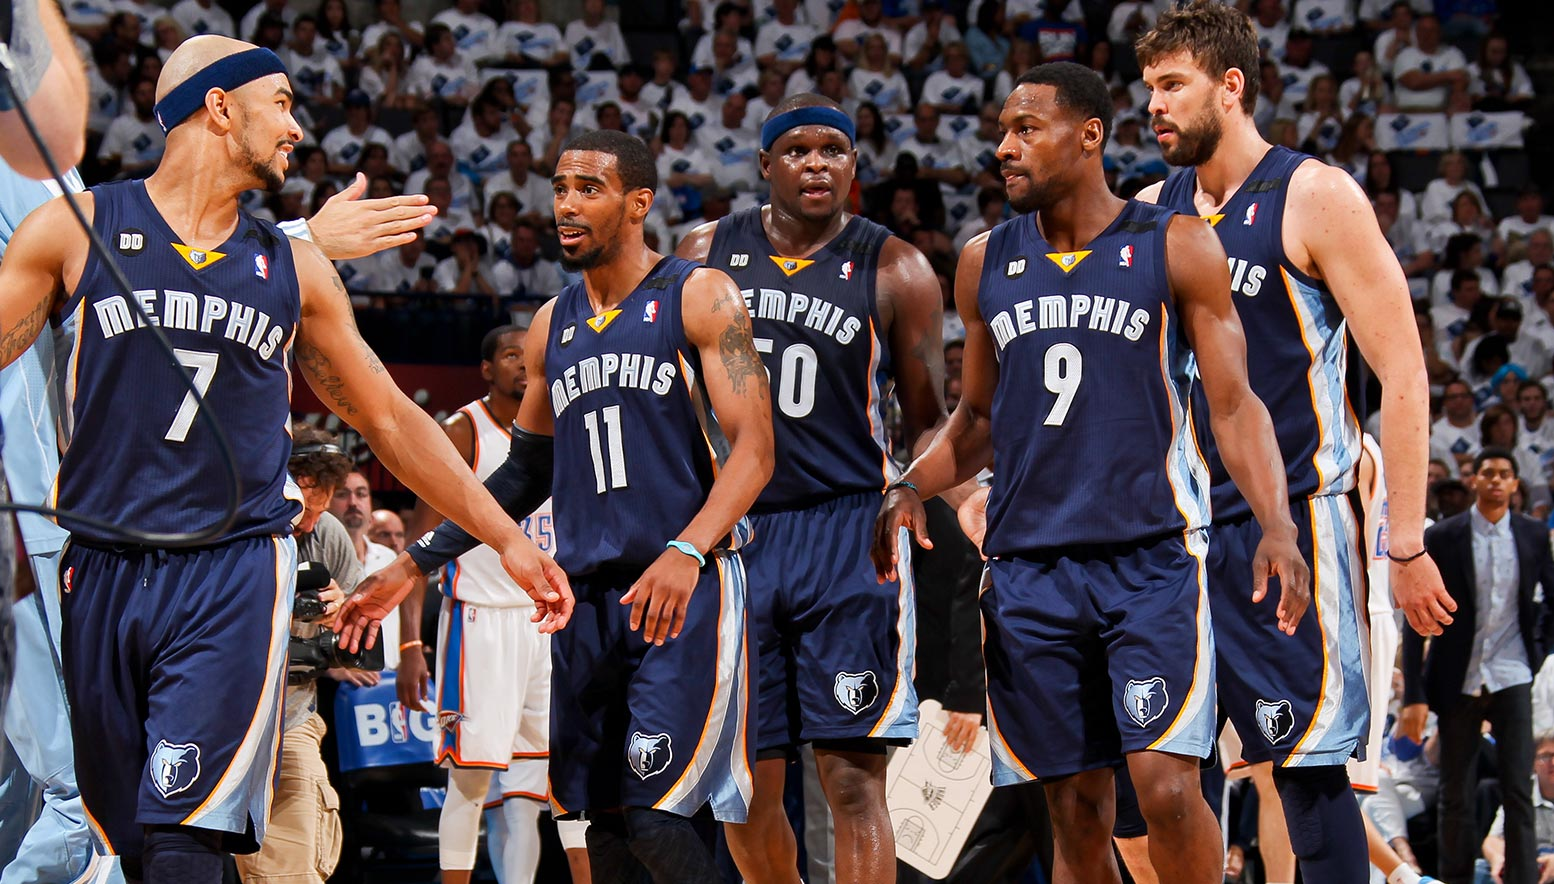 Memphis Grizzlies Core Four